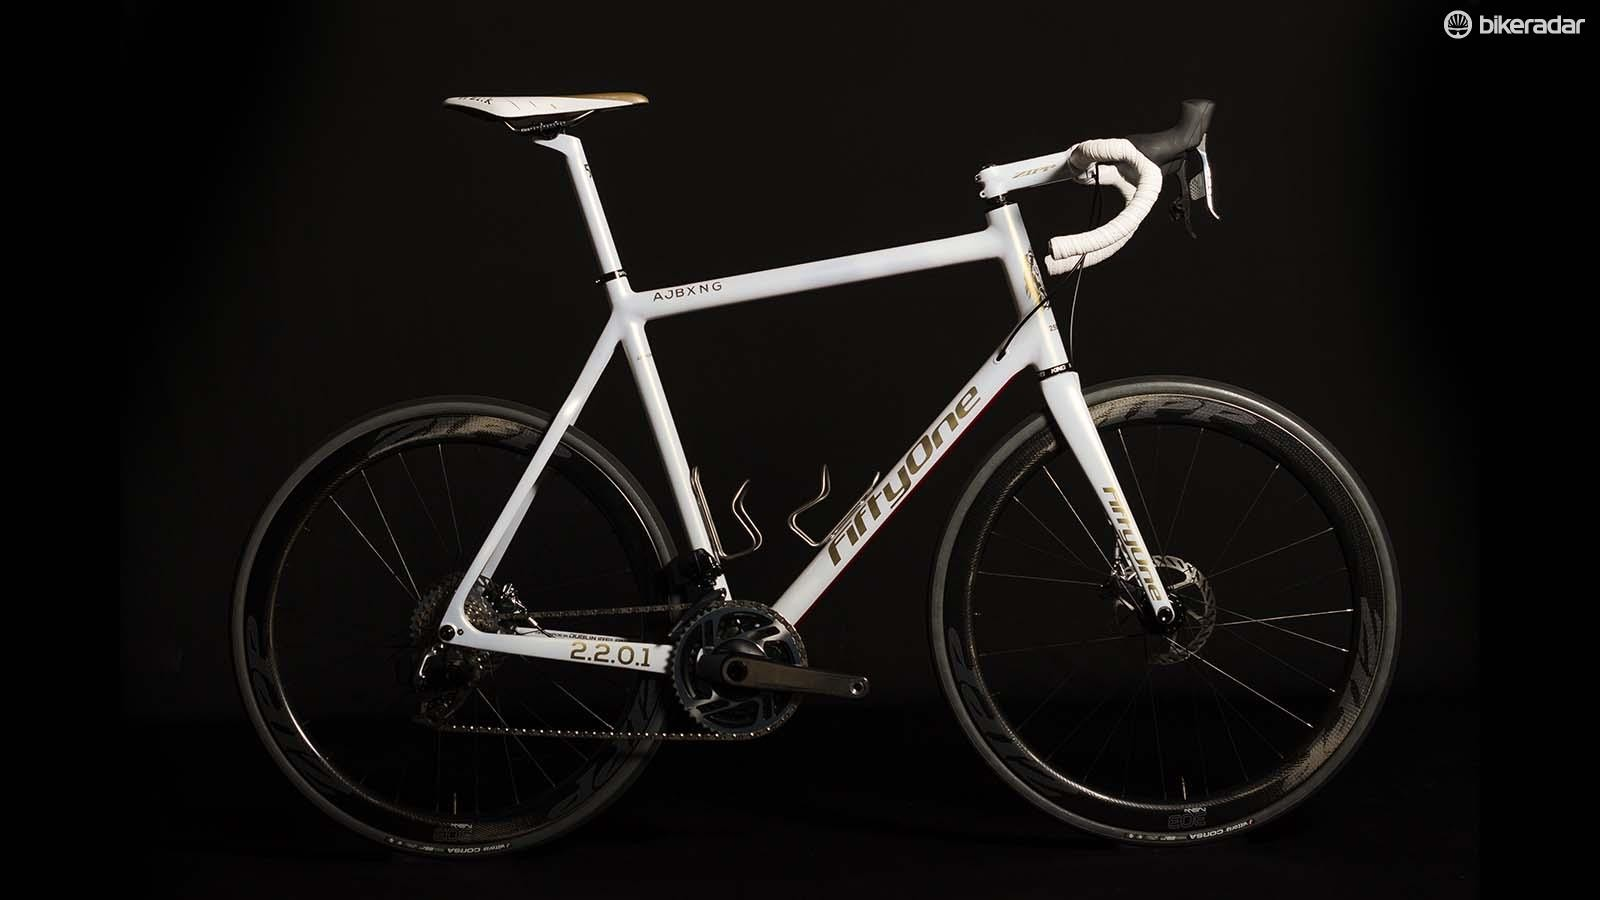 Anthony Joshua's custom bike from frame builders FiftyOne